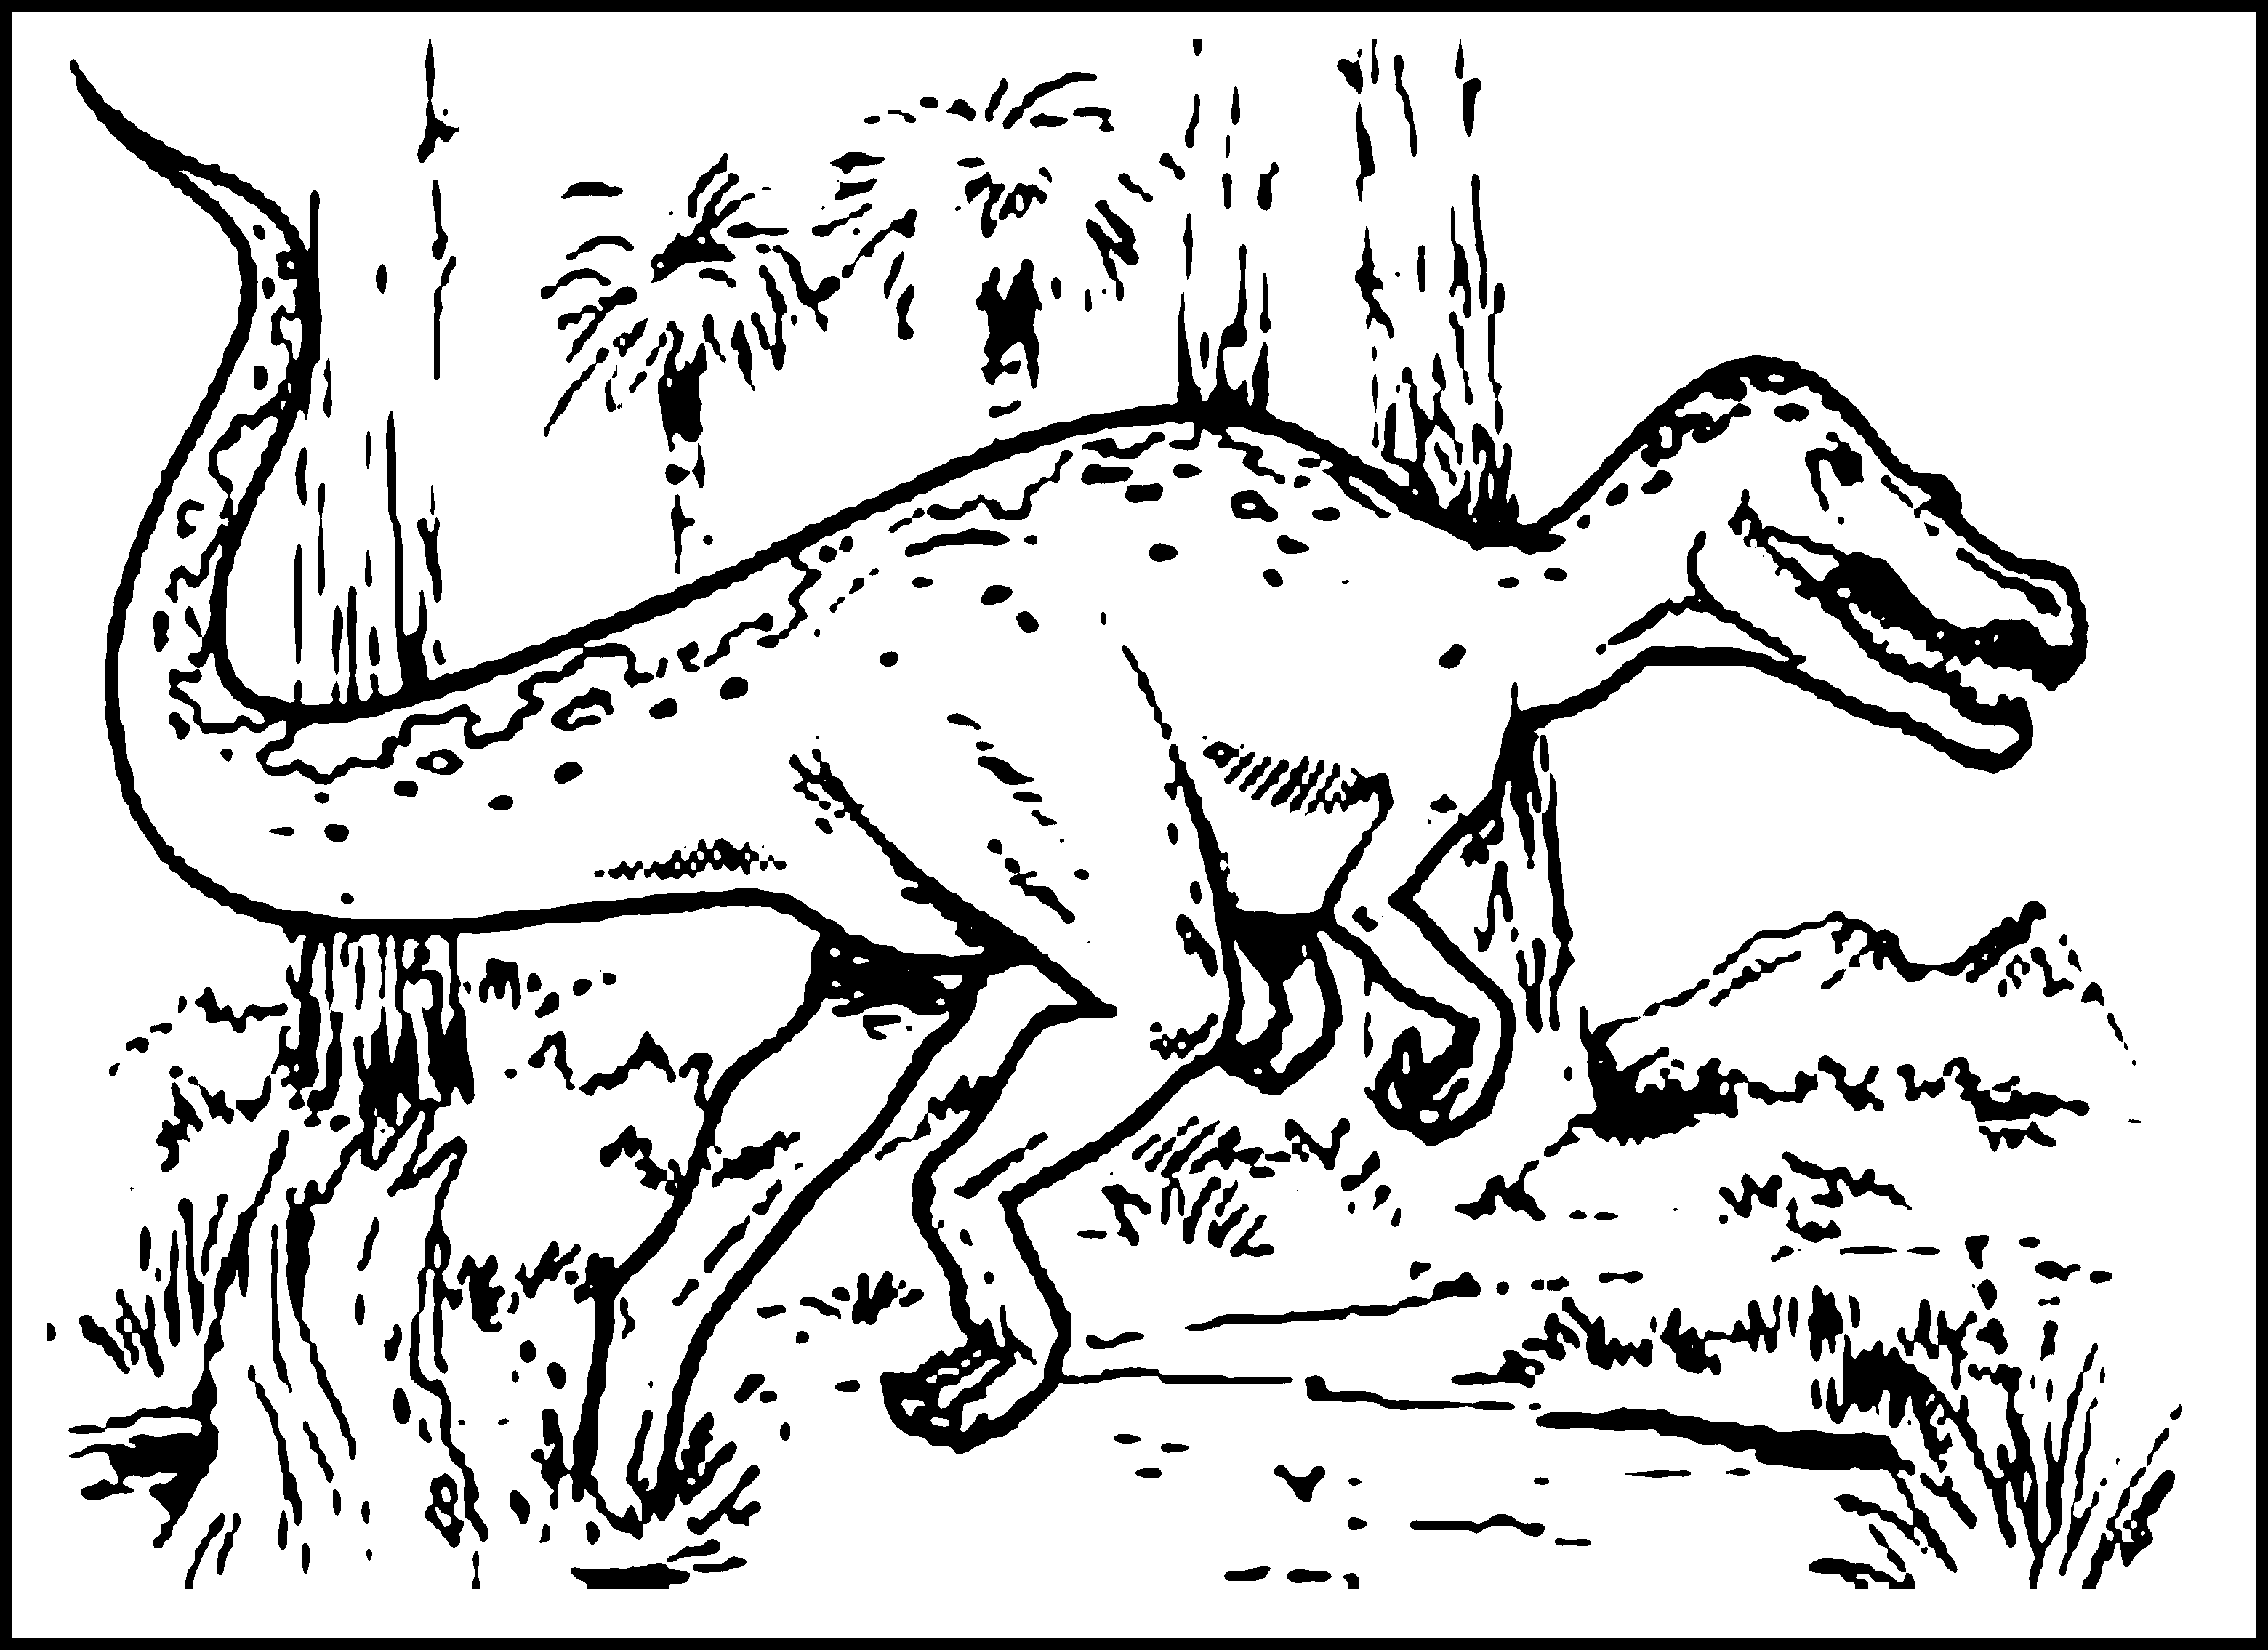 dinosaur colouring pages printable coloring pages dinosaur free printable coloring pages colouring pages dinosaur printable